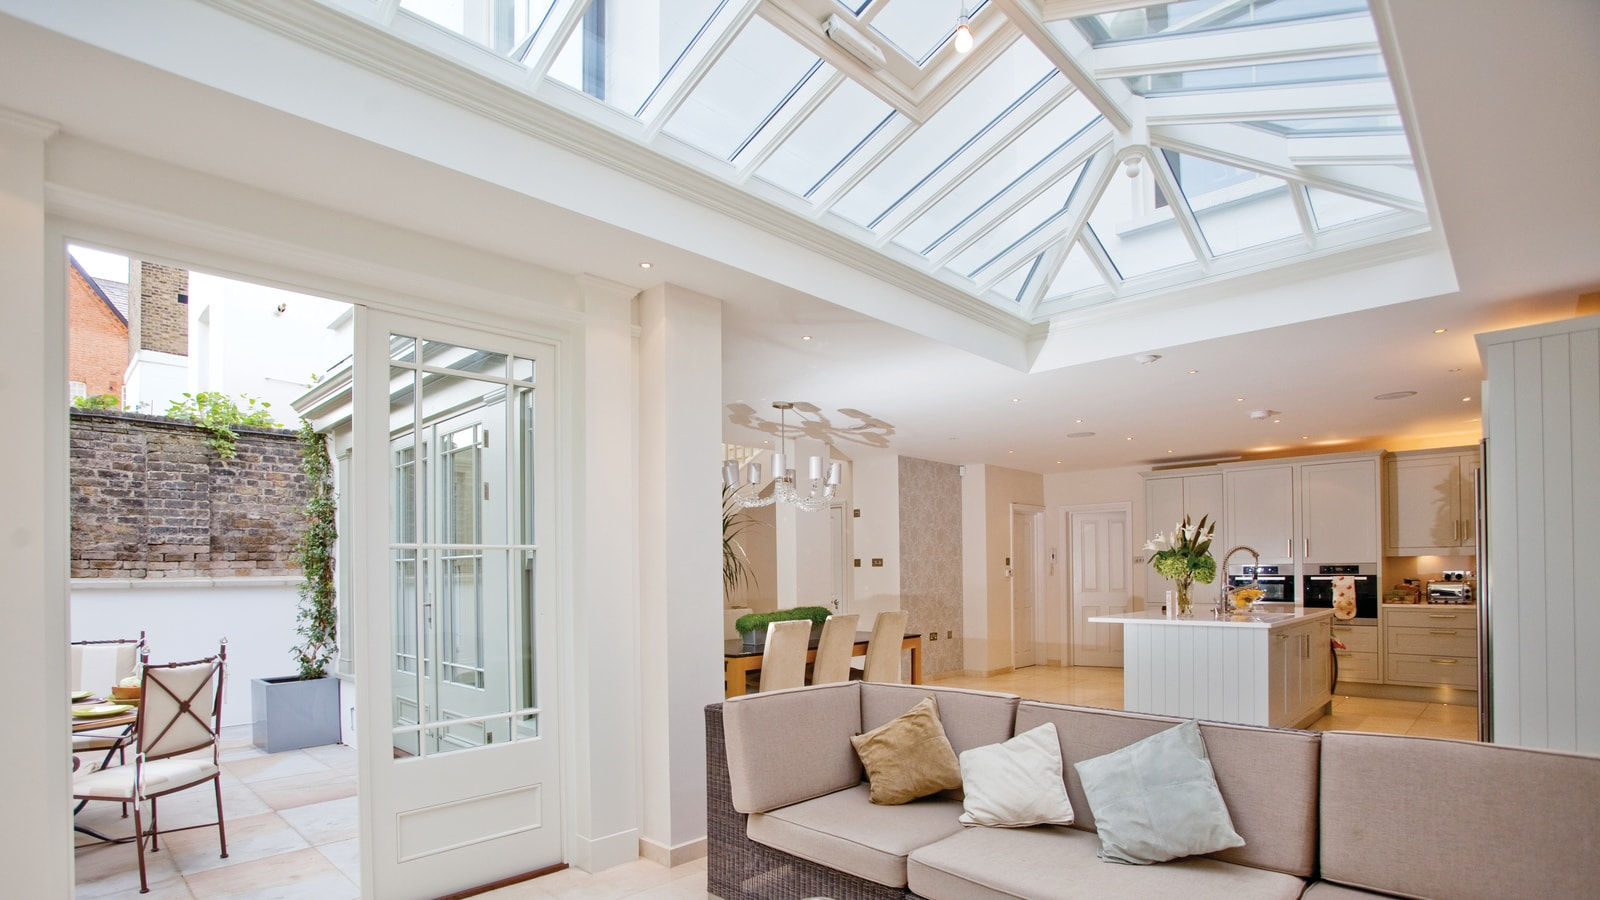 Stylish orangery with large roof lantern, used as spacious seating area